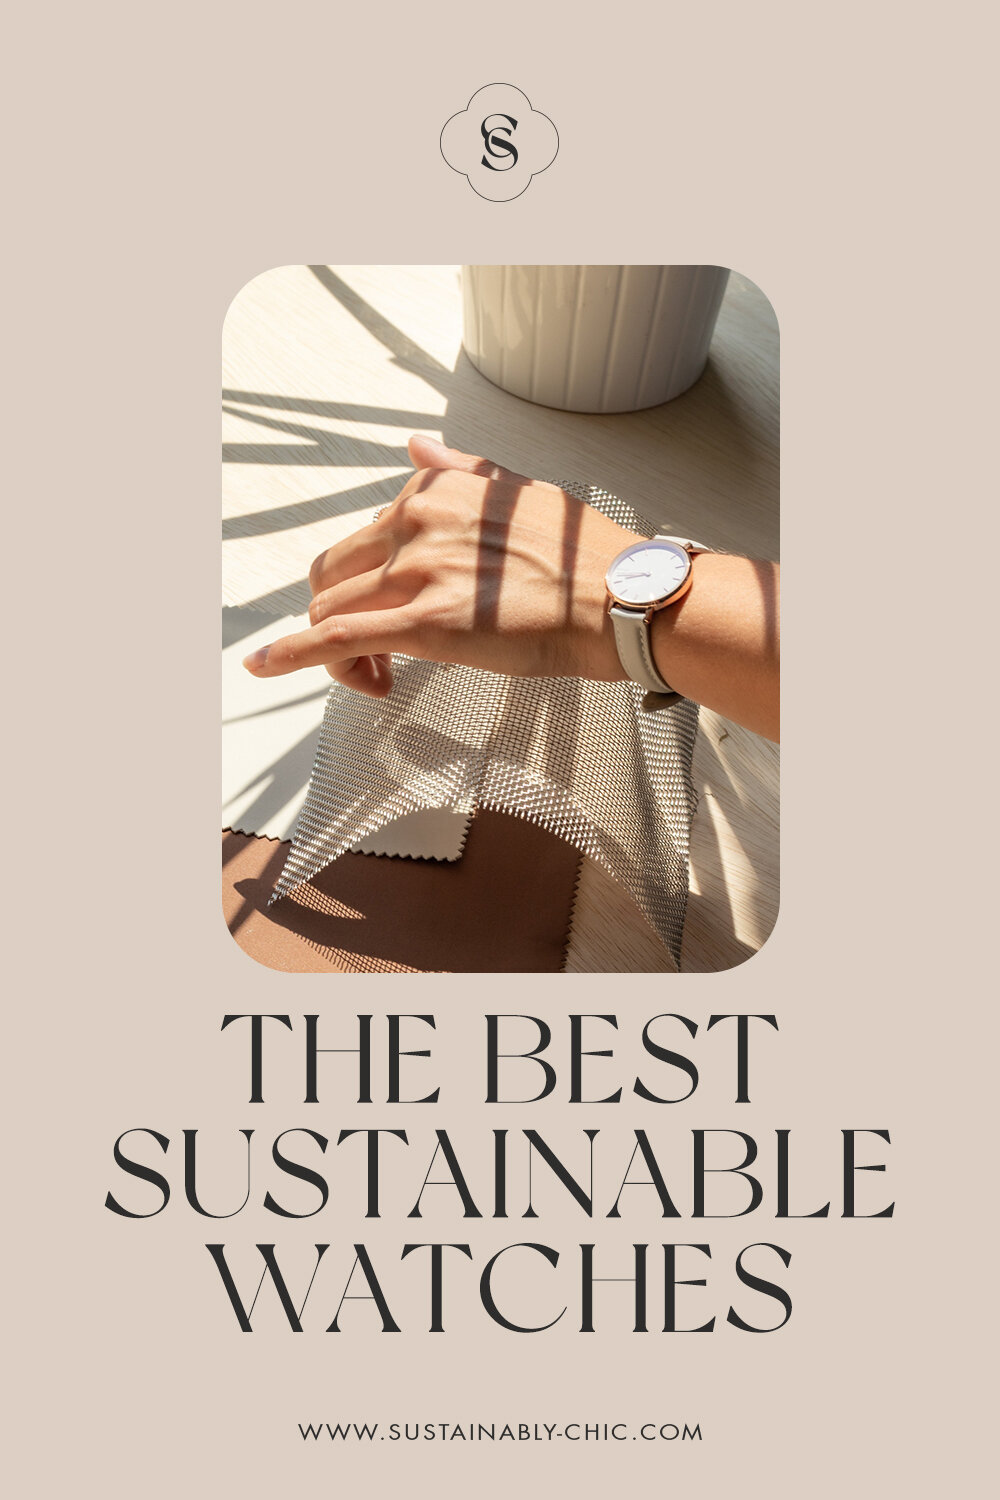 Sustainably Chic | Sustainable Fashion Blog | The Best Sustainable Watches for Men & Women.jpg